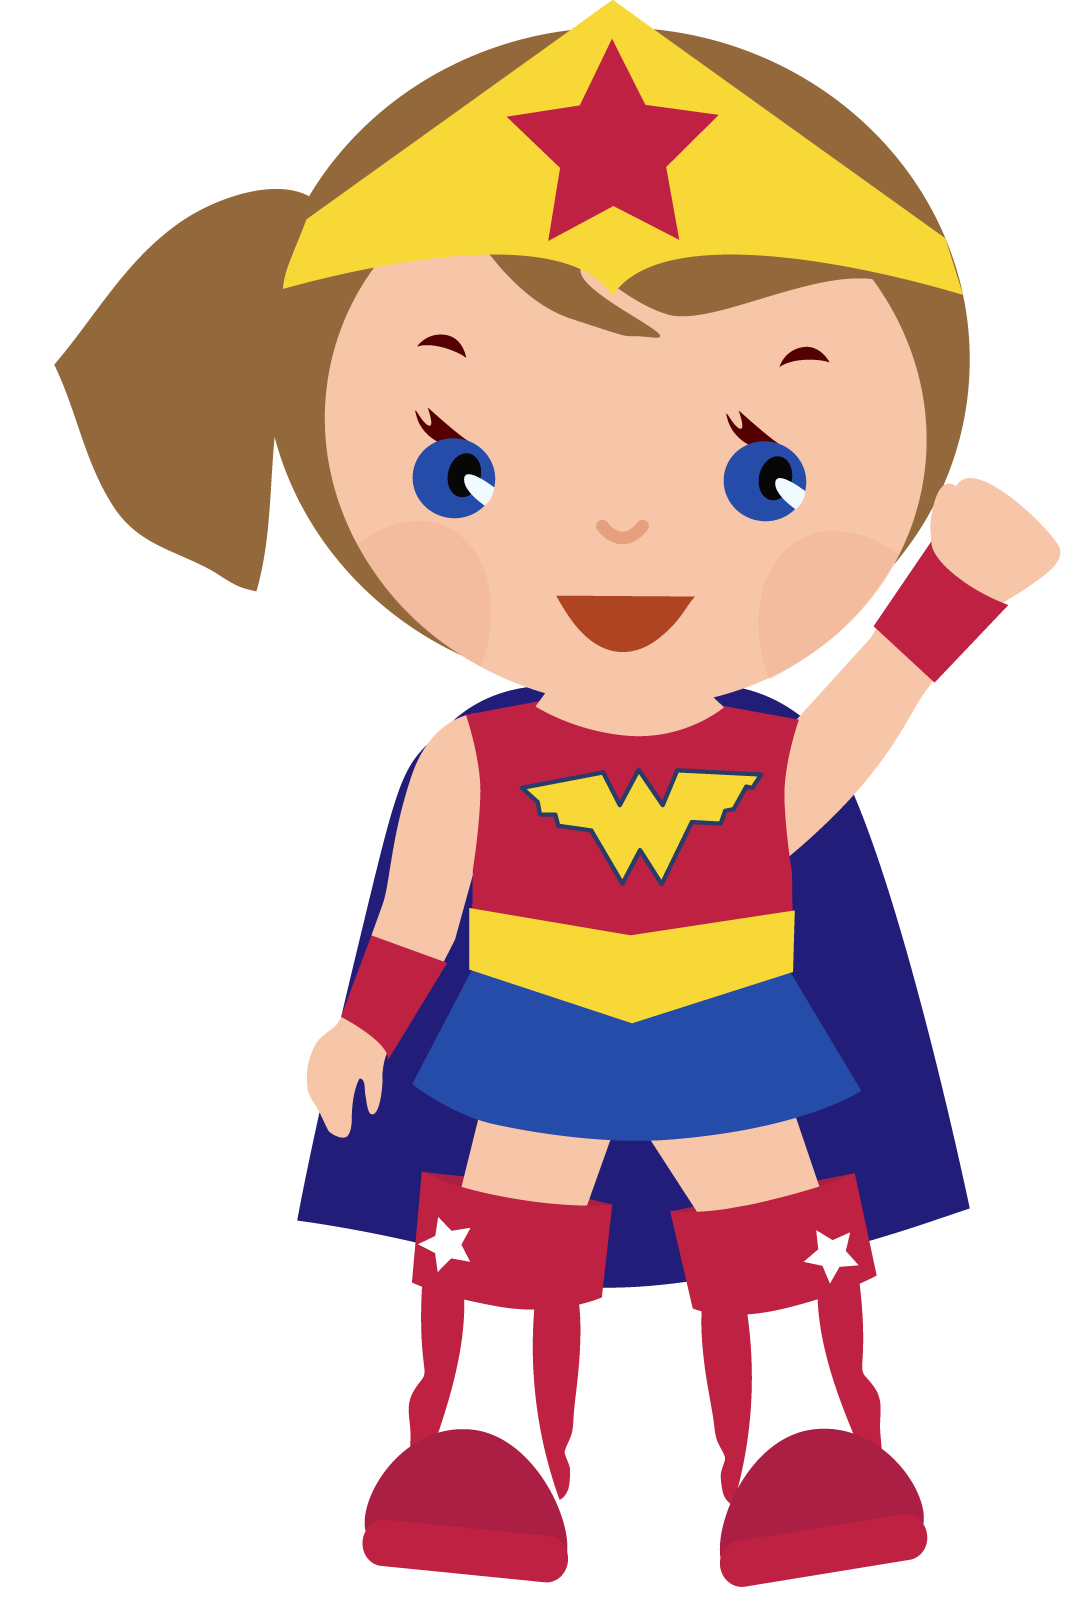 Preschool clipart computer. Superhero girl super hero